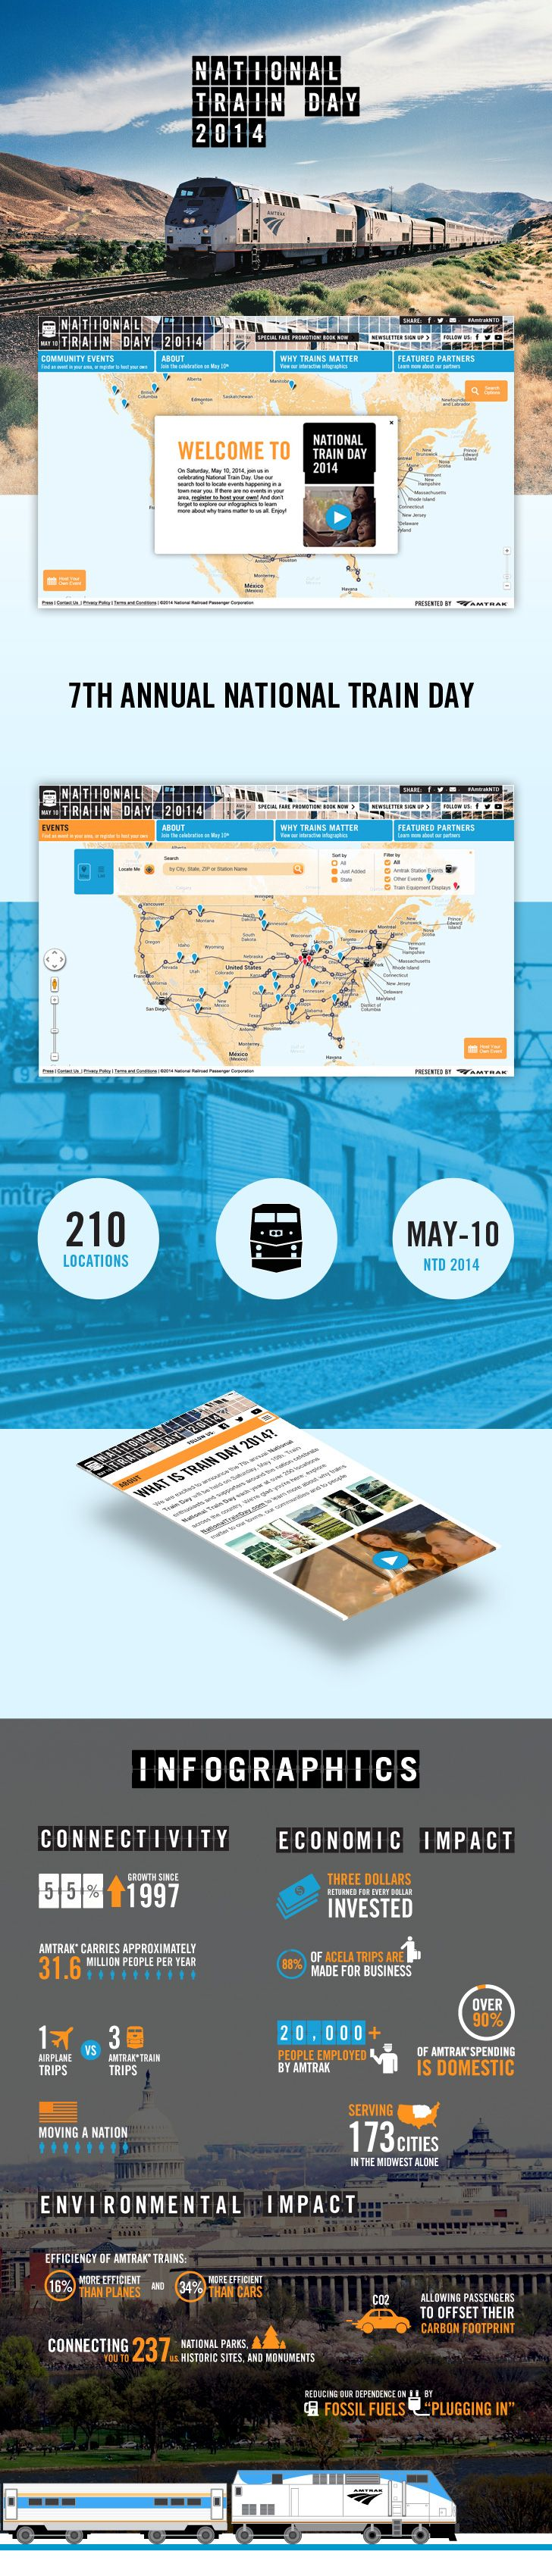 National Train Day 2014 #Event_websites #Event_Locator